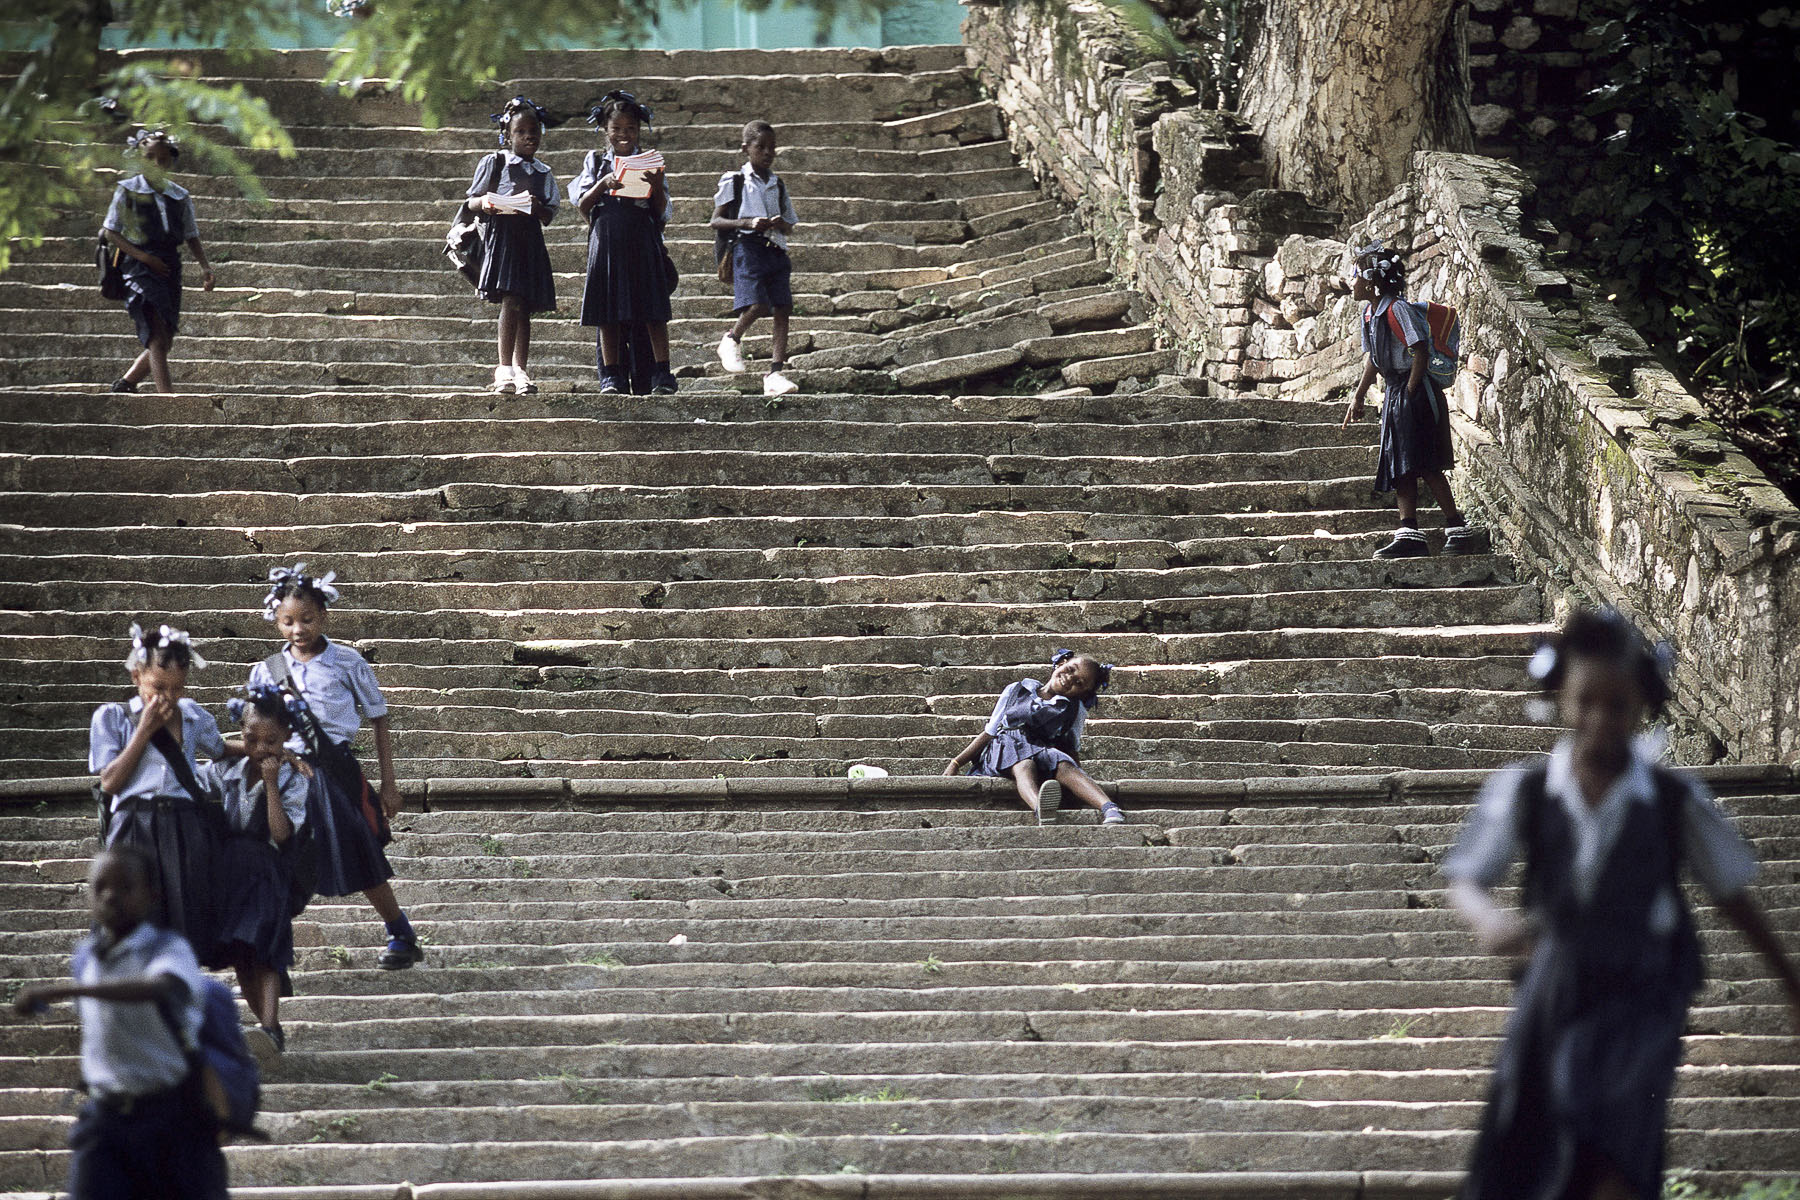 Pupils climbing down the stairs of the Sans-Souci palace built in 1806 by King Christophe and destroyed by the 1842 earthquake in October 2003